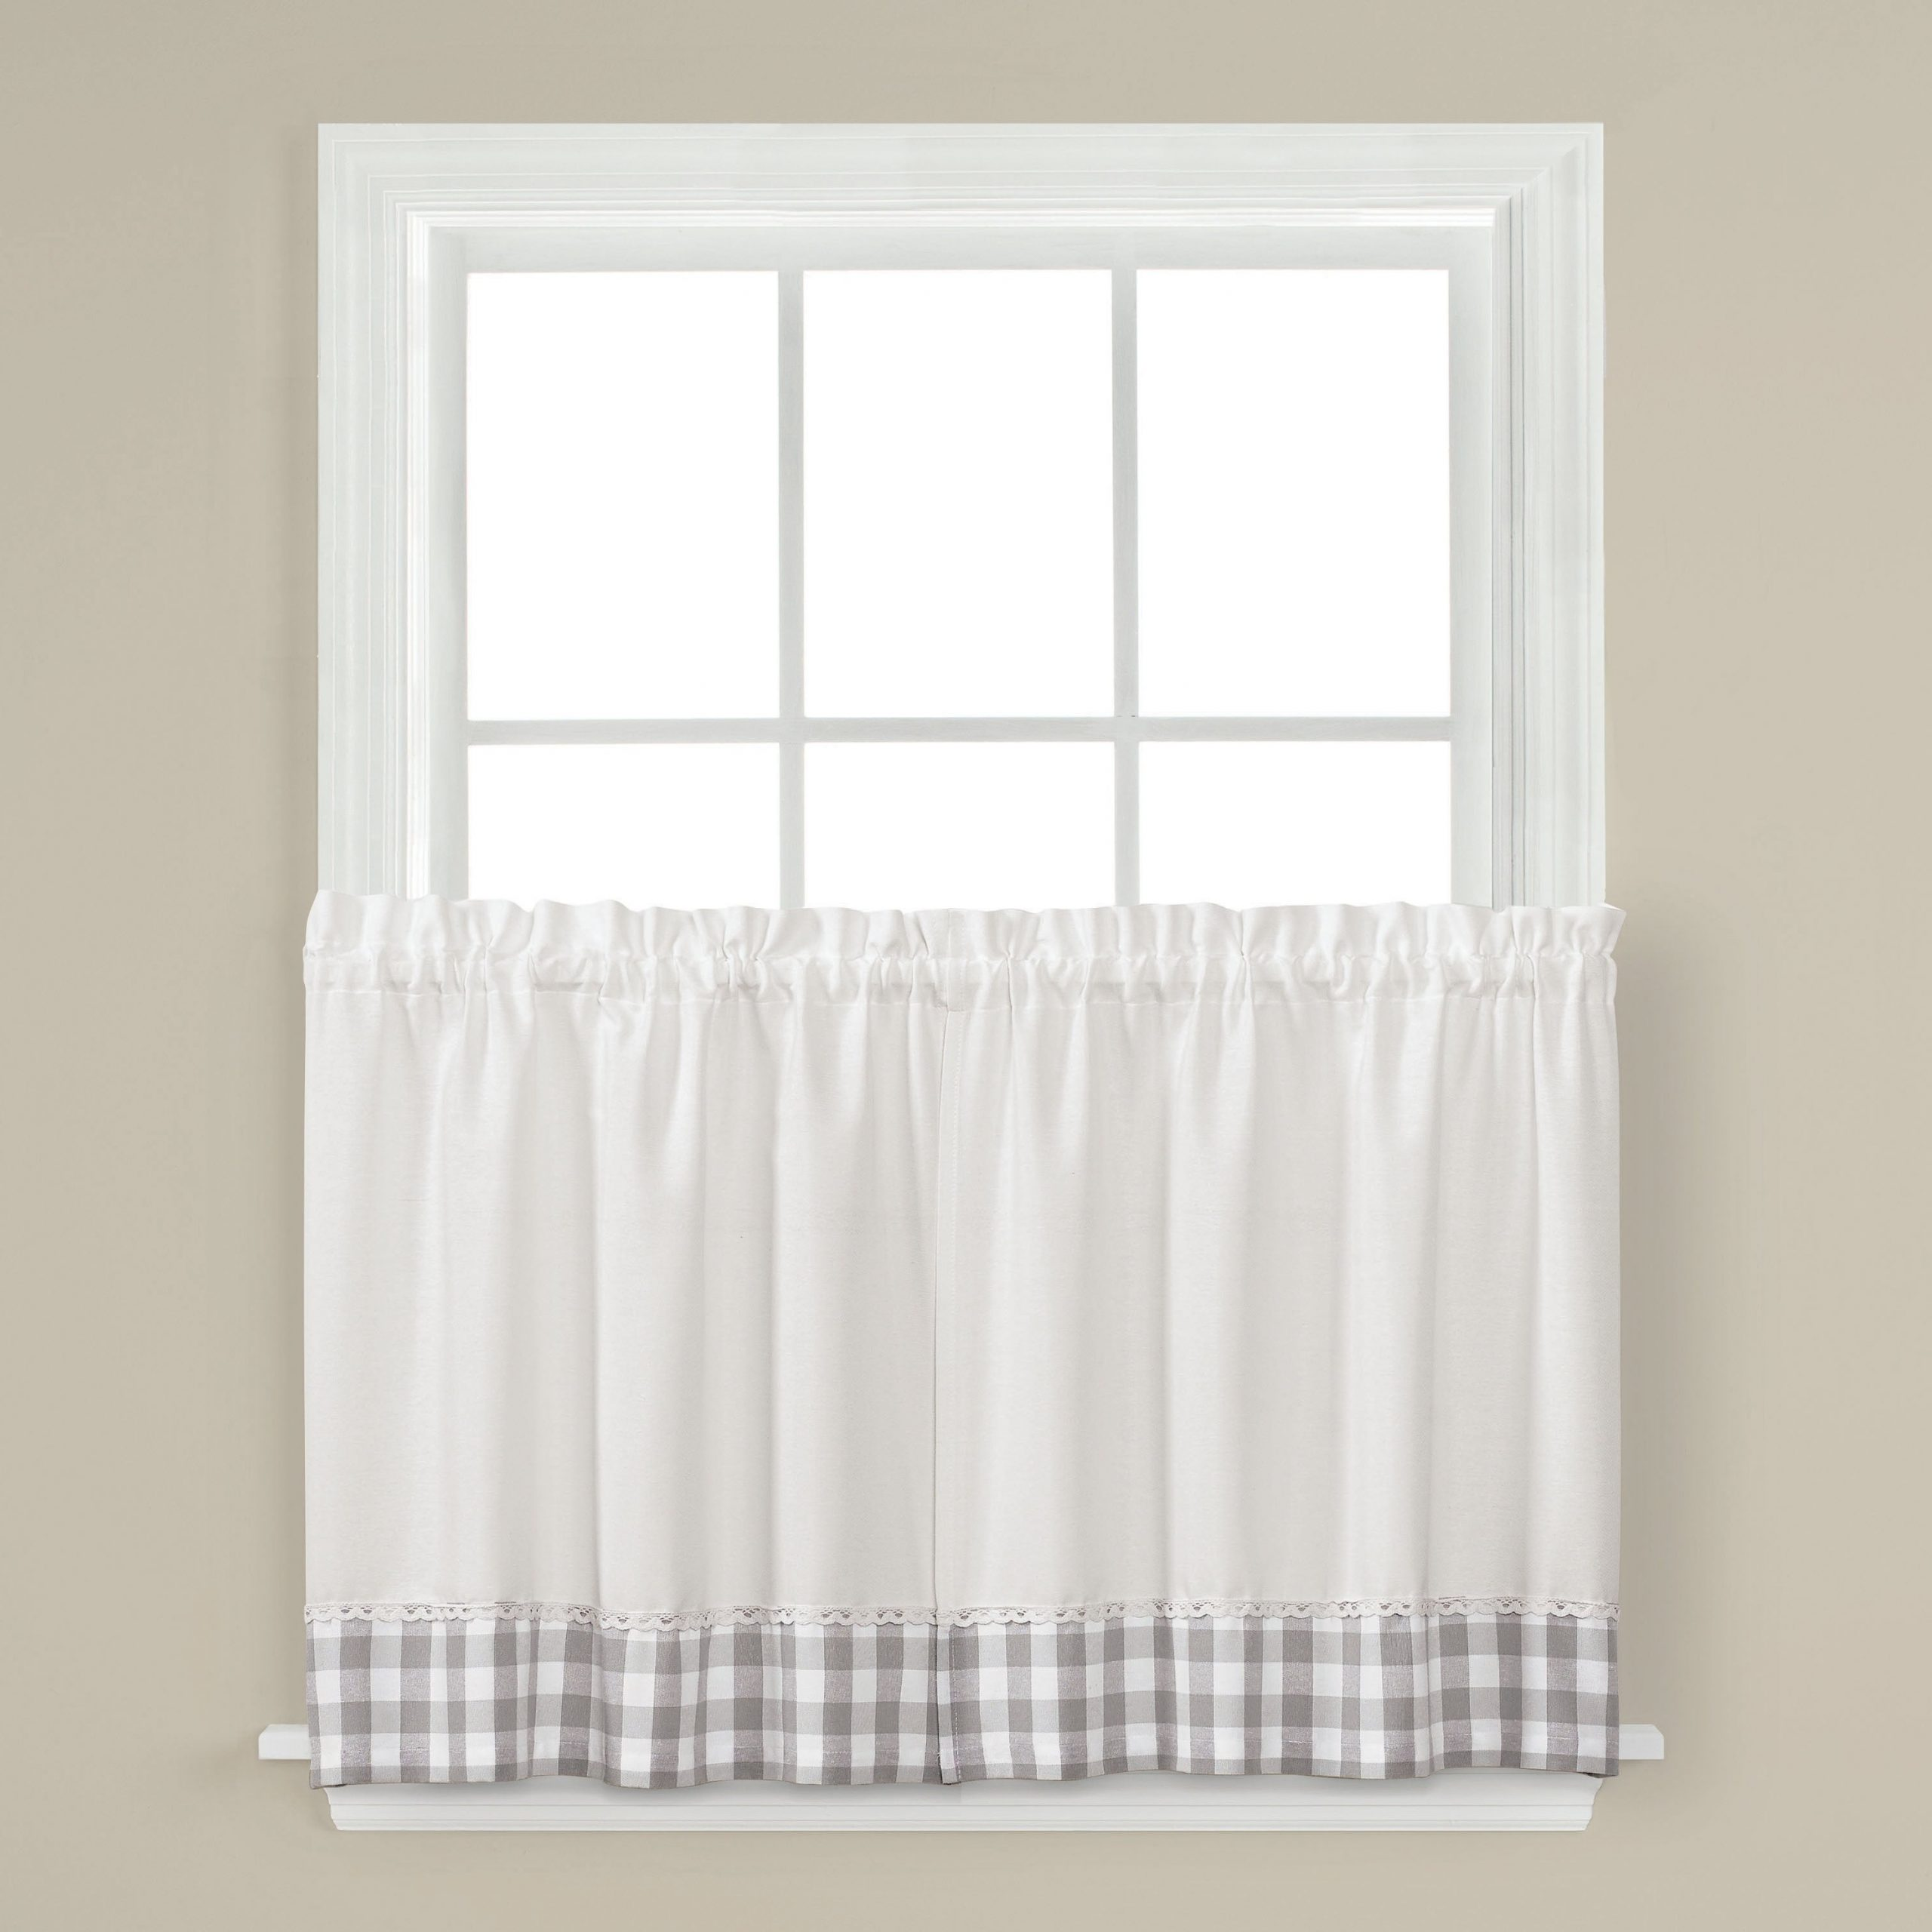 Skl Home Cumberland 36 Inch Tier Pair In Dove Gray Regarding Well Known Dove Gray Curtain Tier Pairs (View 11 of 20)